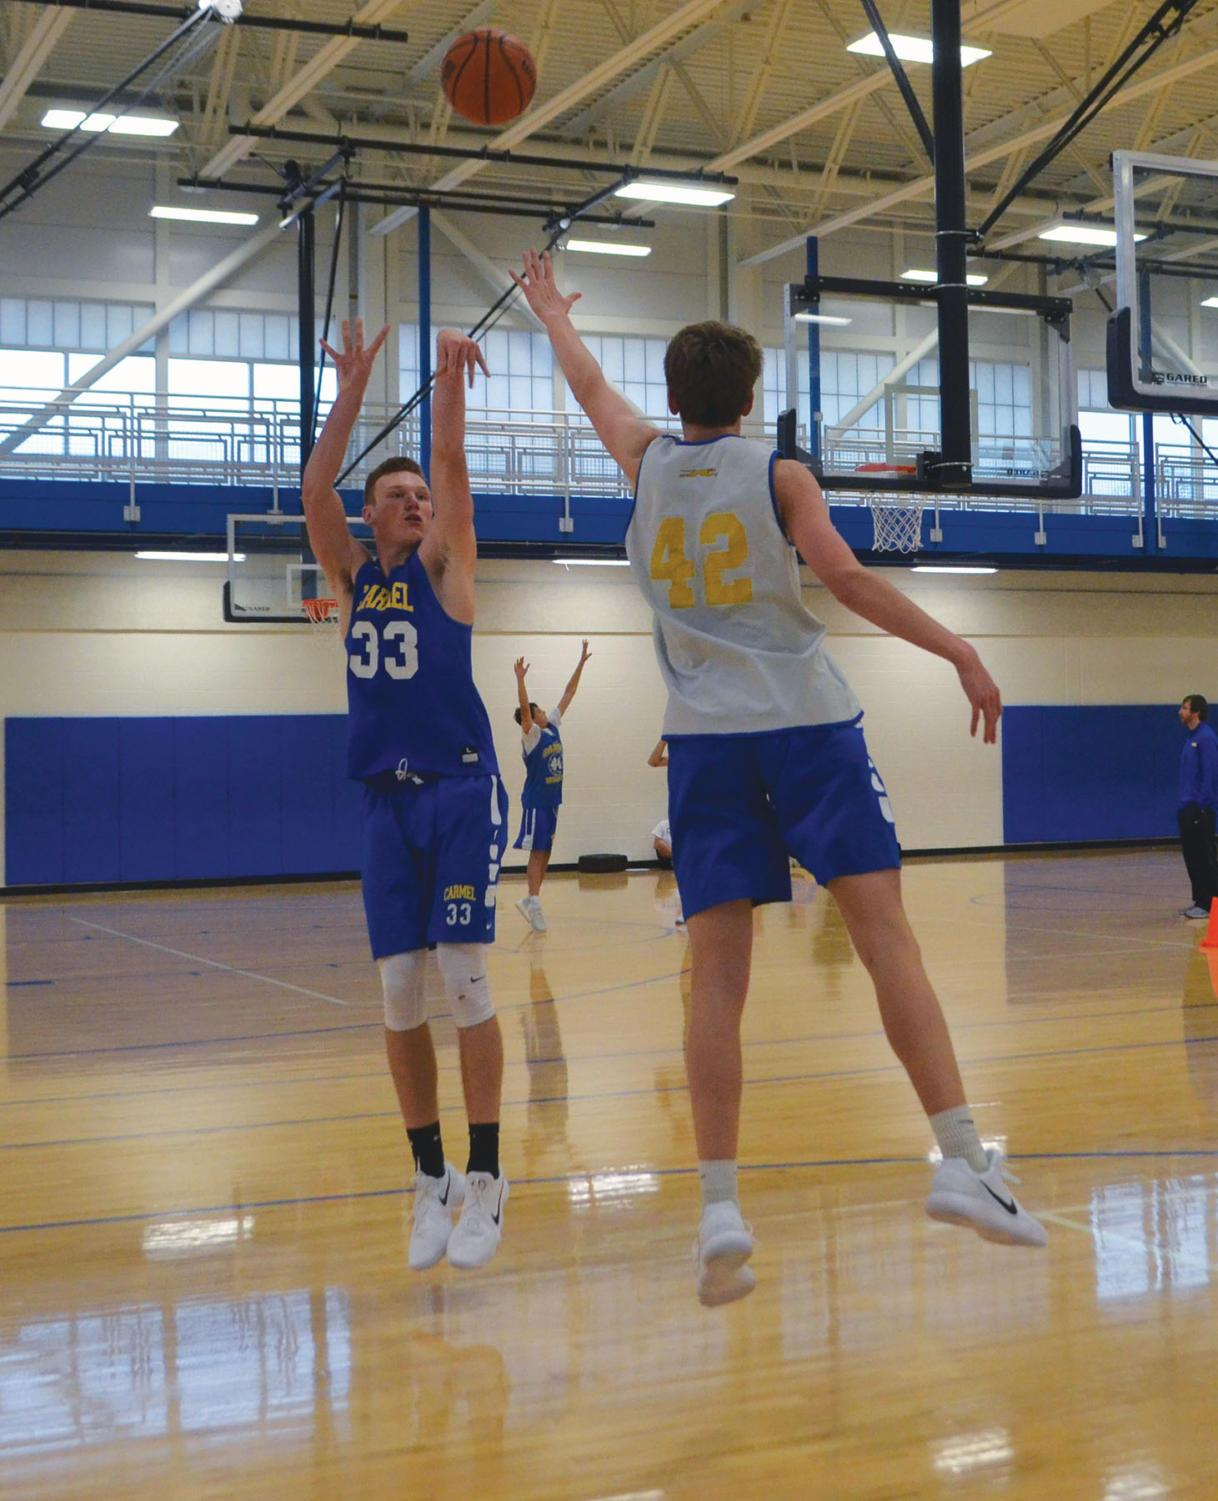 John-Michael Mulloy, varsity basketball player and junior, shoots over junior Benjamin Frische during practice. Mulloy said he only tweets things that help maintain a positive image. AGRAYAN GUPTA | Photo